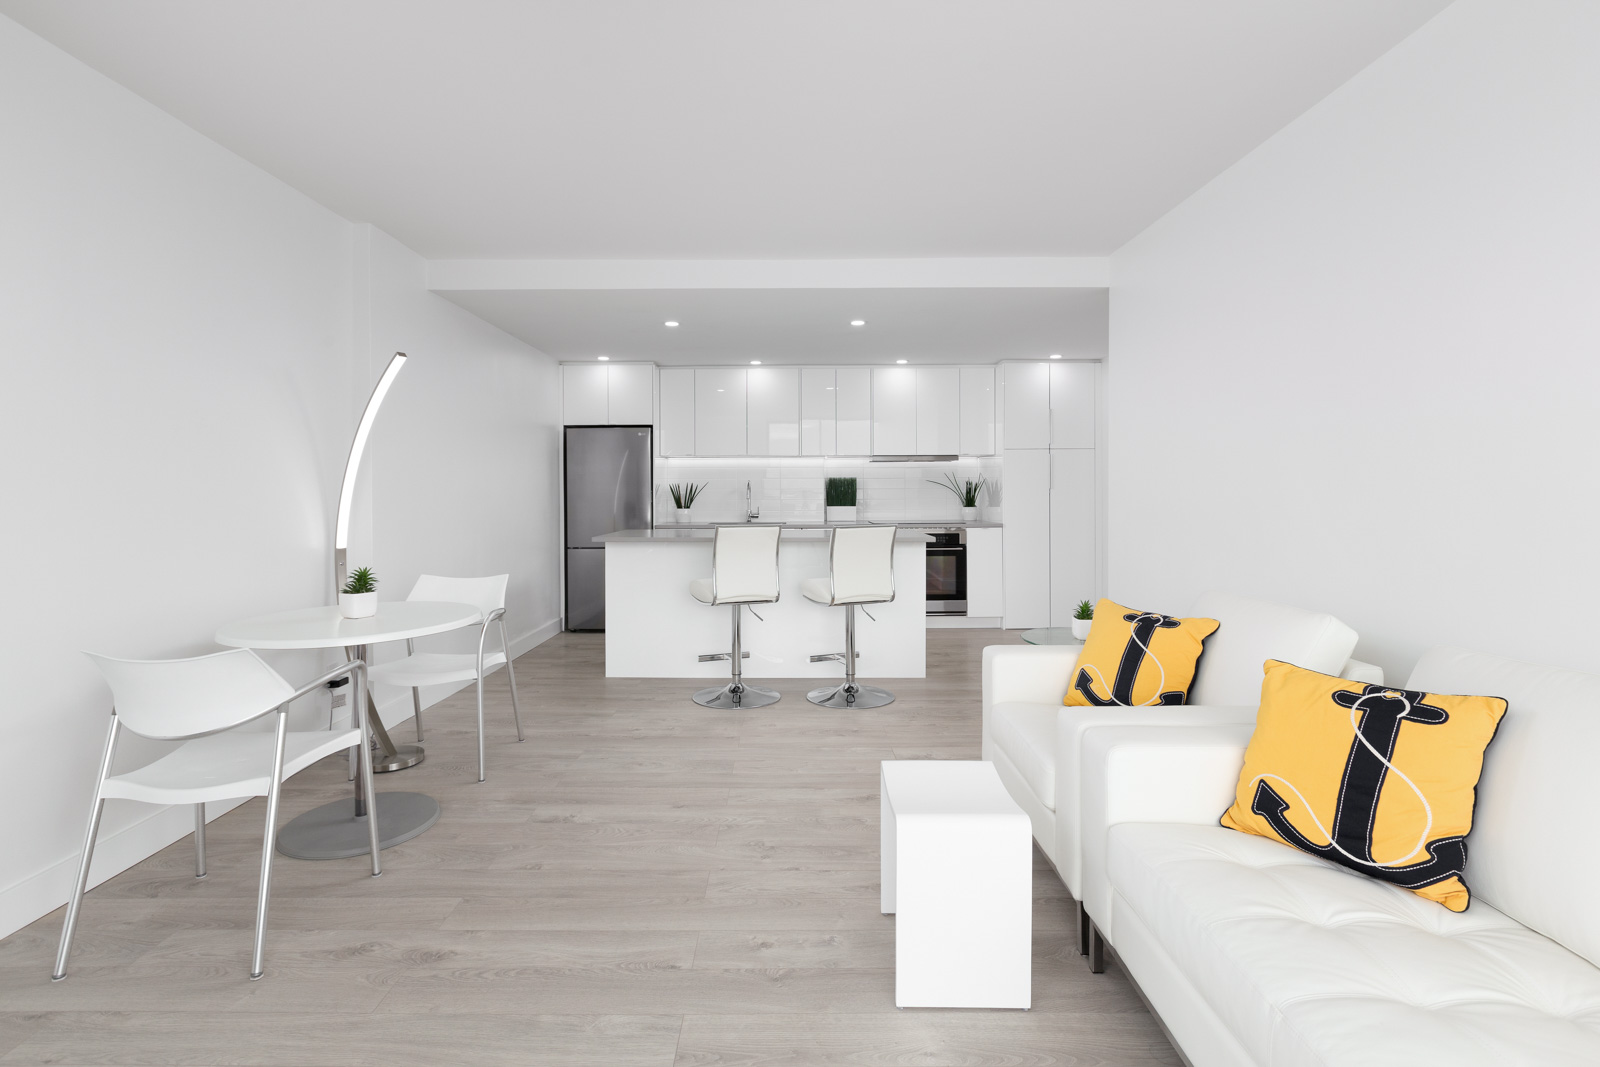 living room and kitchen of 1 bedroom rental apartment in kitsilano neighbourhood of vancouver